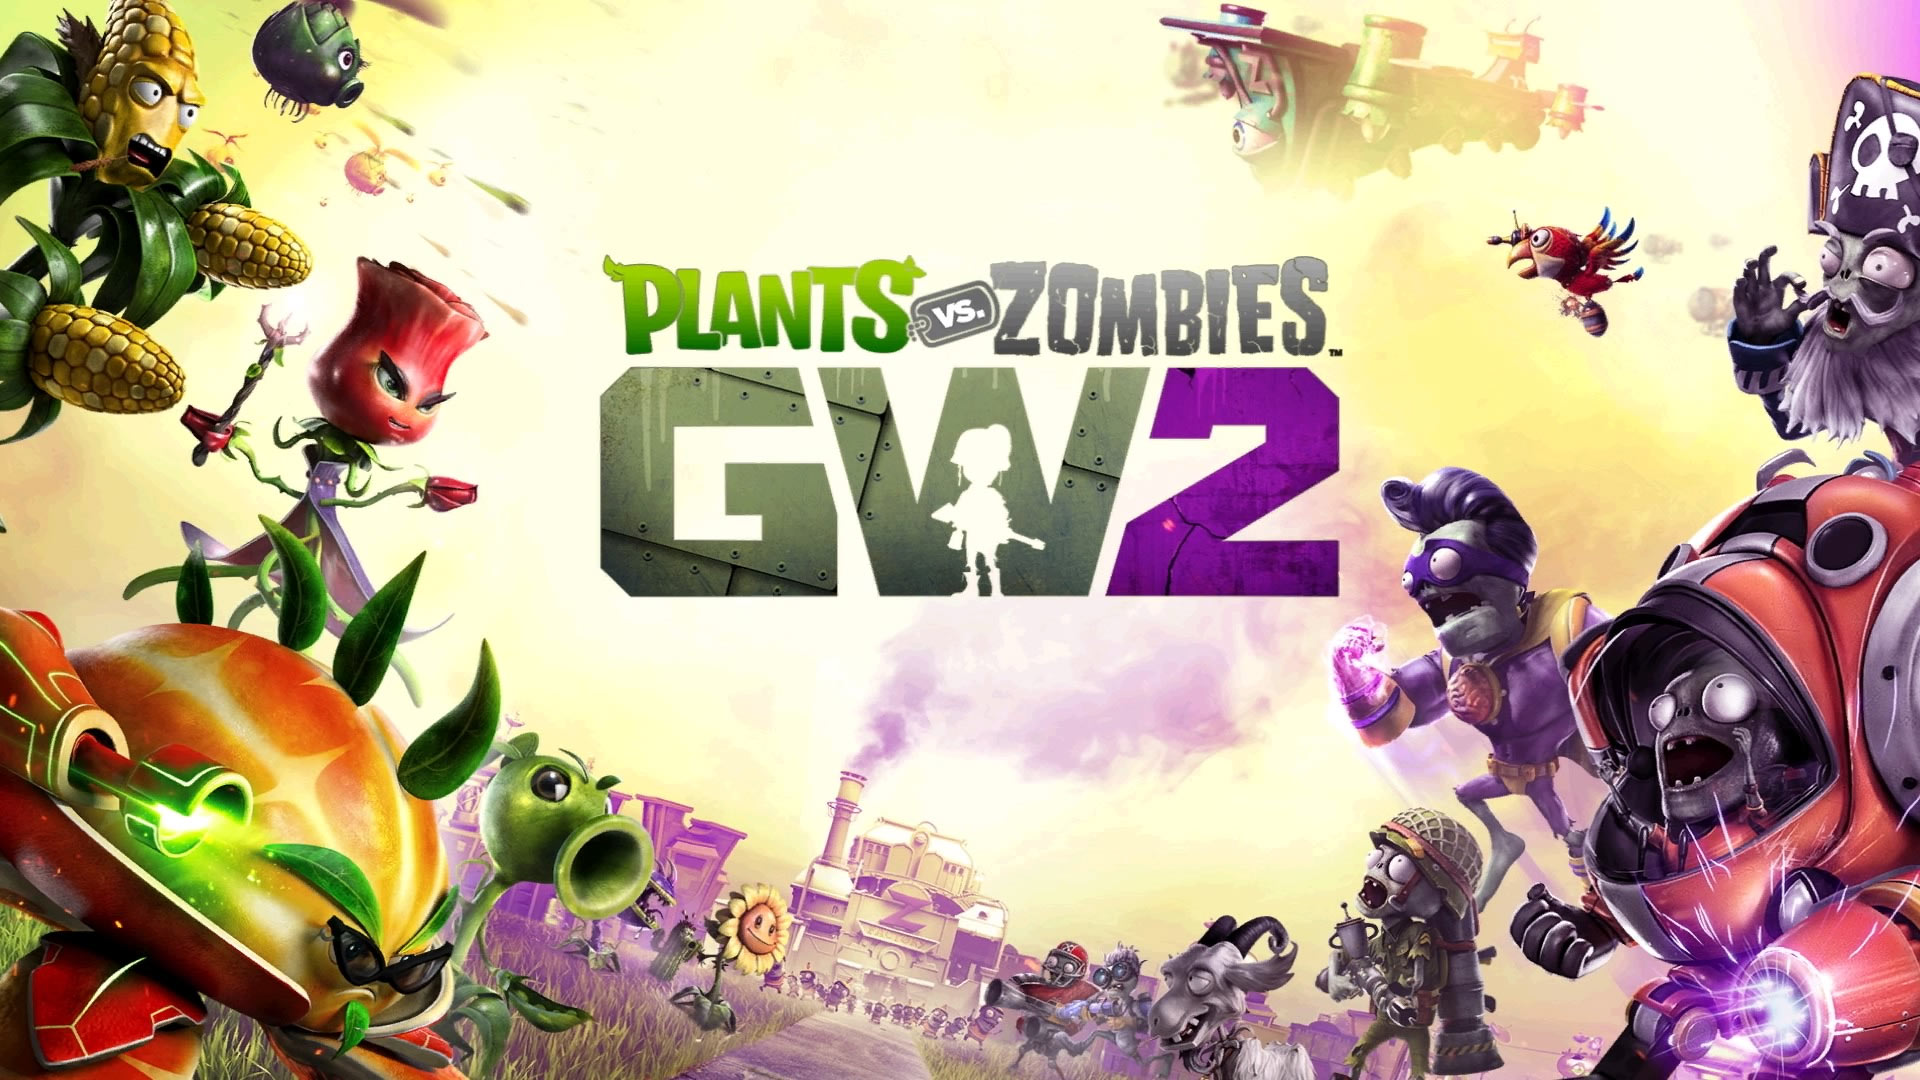 Plants vs Zombies: Garden Warfare 2 Wallpaper